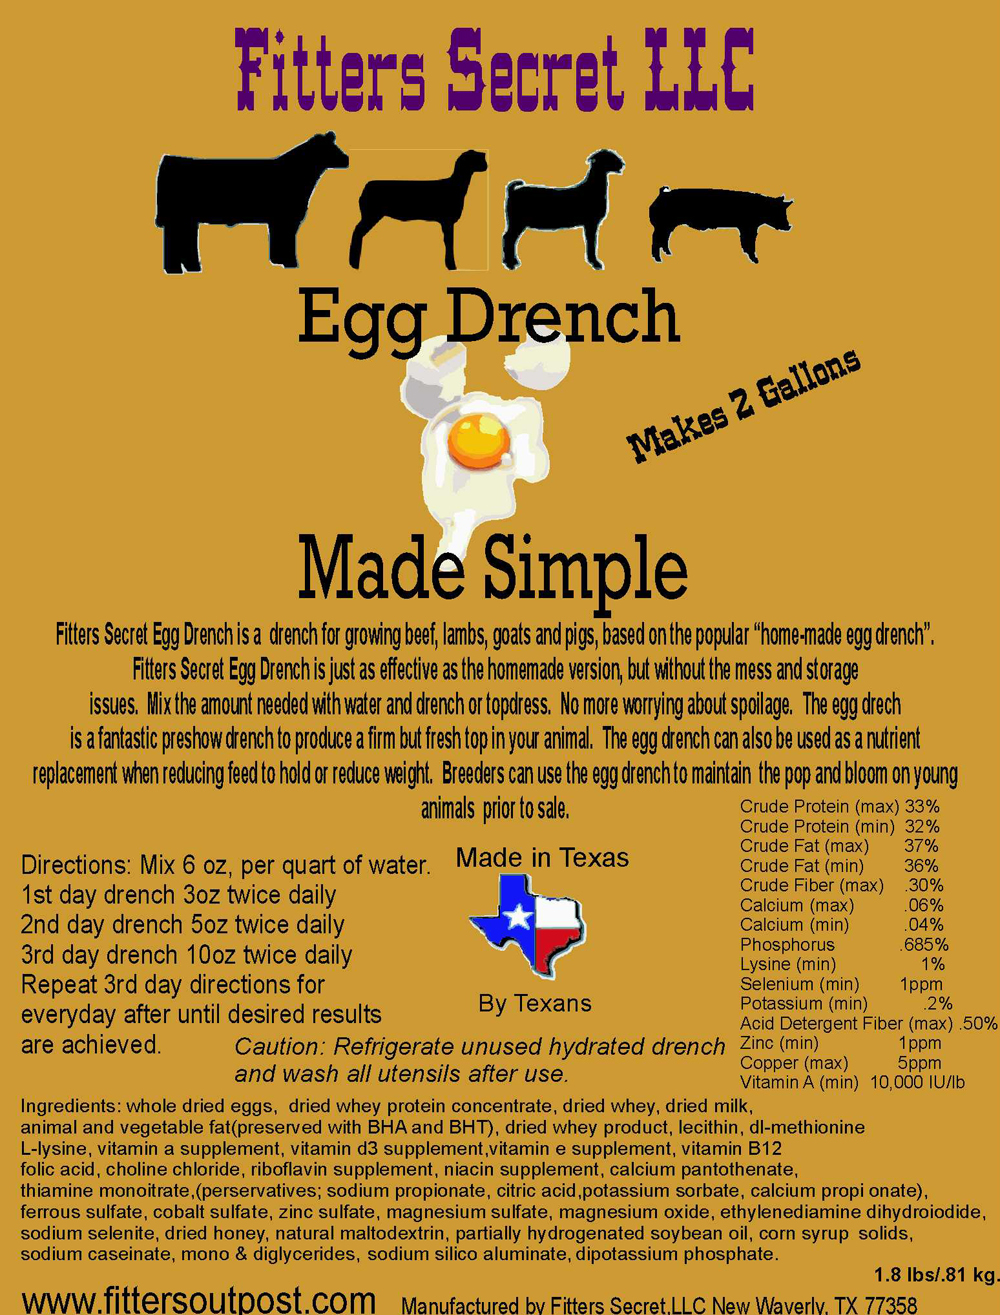 Egg Drench Made Simple